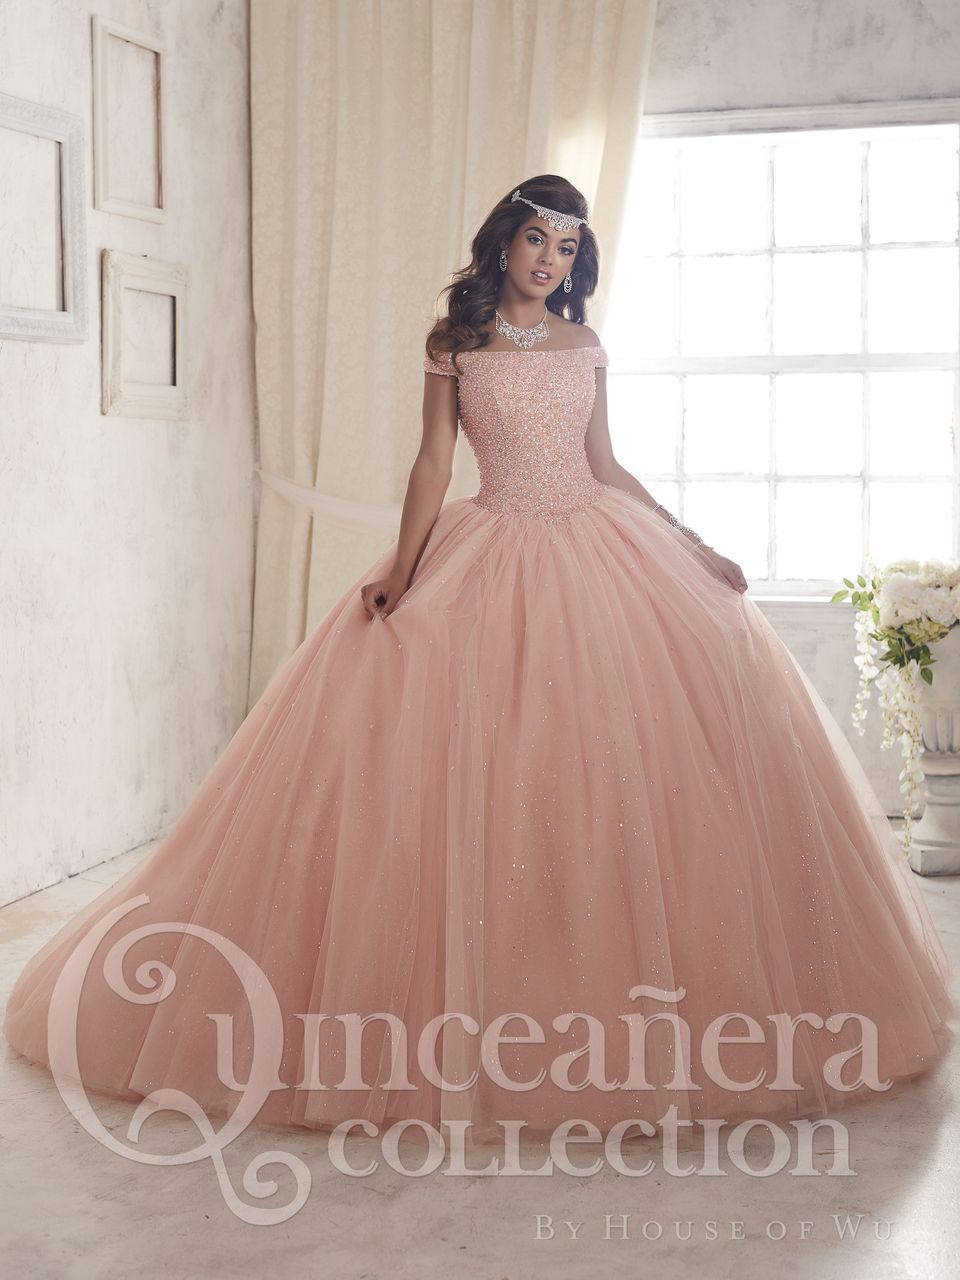 Quinceanera Dress #26844 | Pinterest | 15 años, Vestiditos y vestidos XV